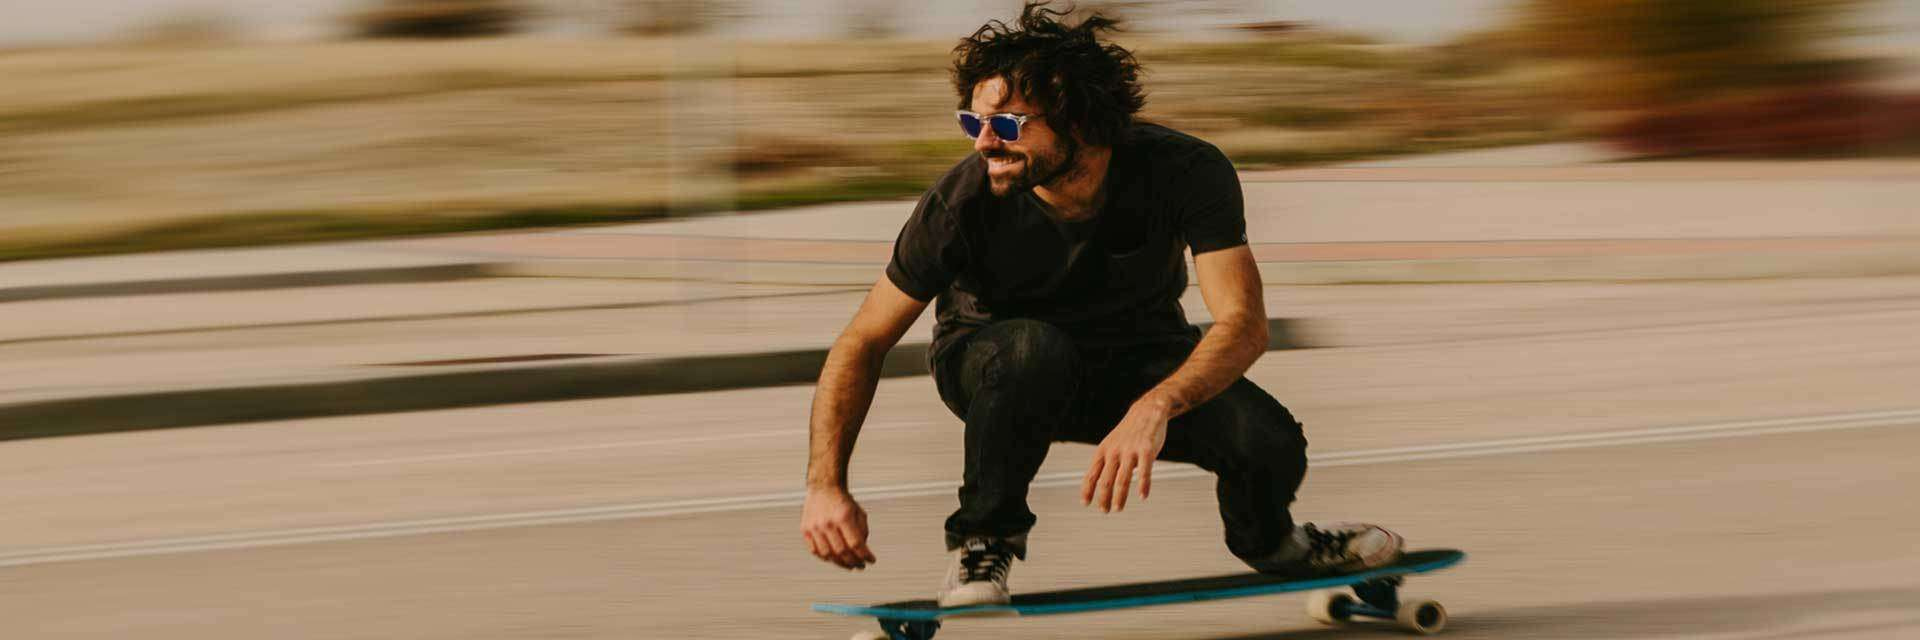 butte-premier-physical-therapy-skateboarding-1-1920×640